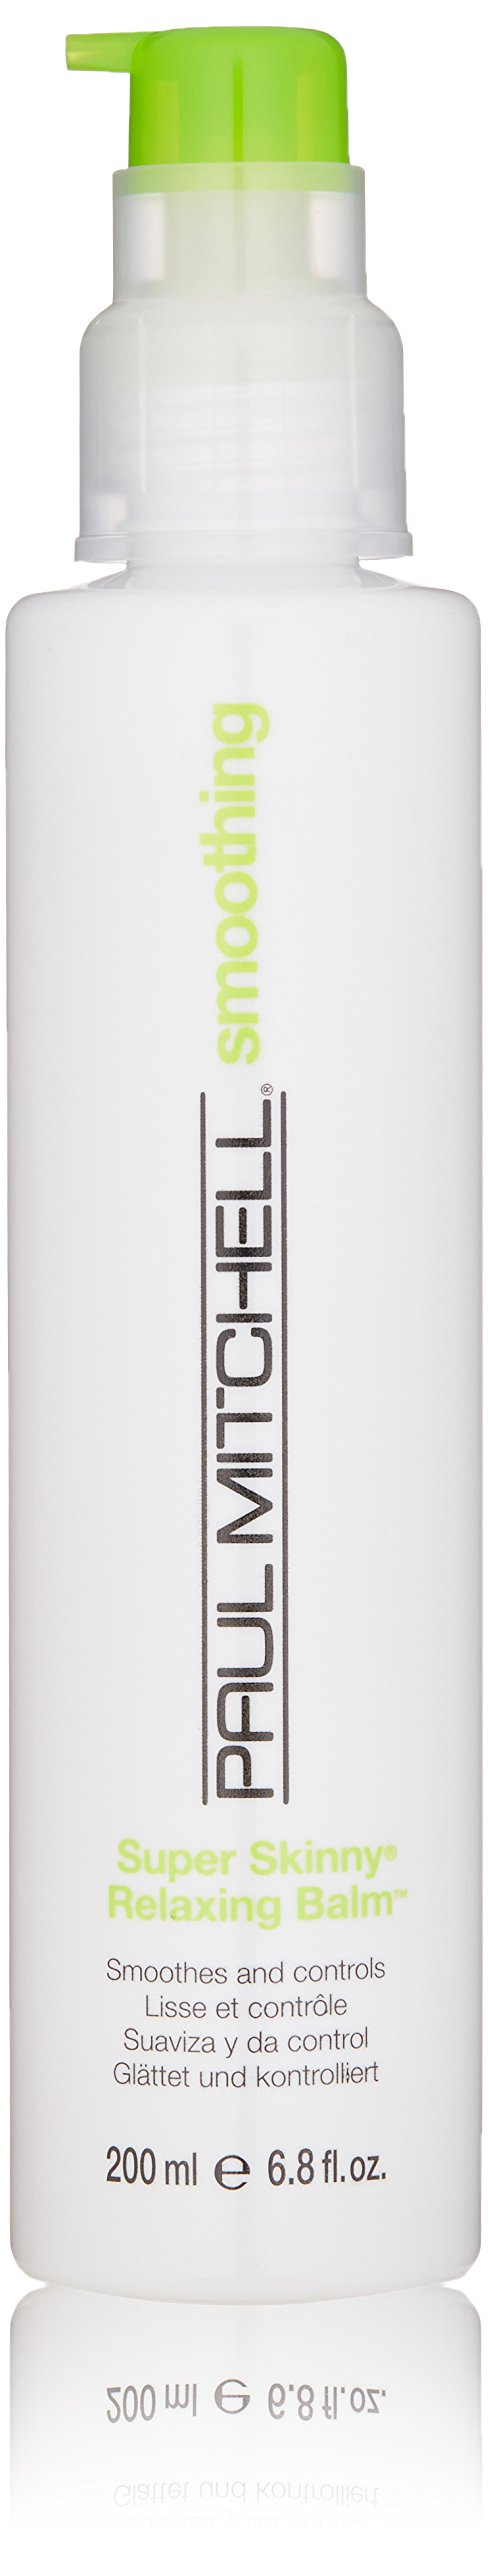 Paul Mitchell Super Skinny Relaxing Balm,6.8 Fl Oz by Paul Mitchell